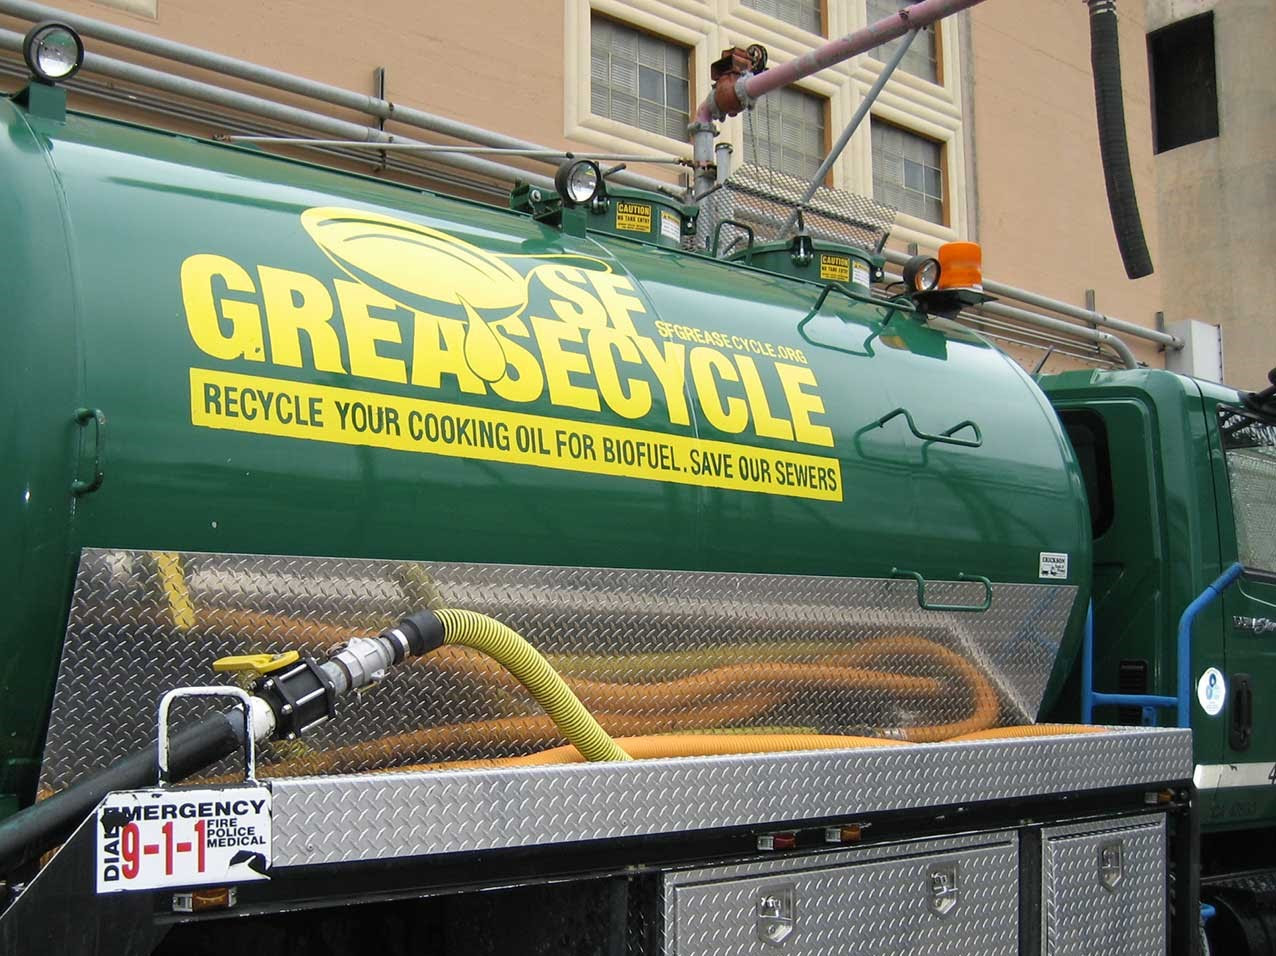 Greasecycle vehicle